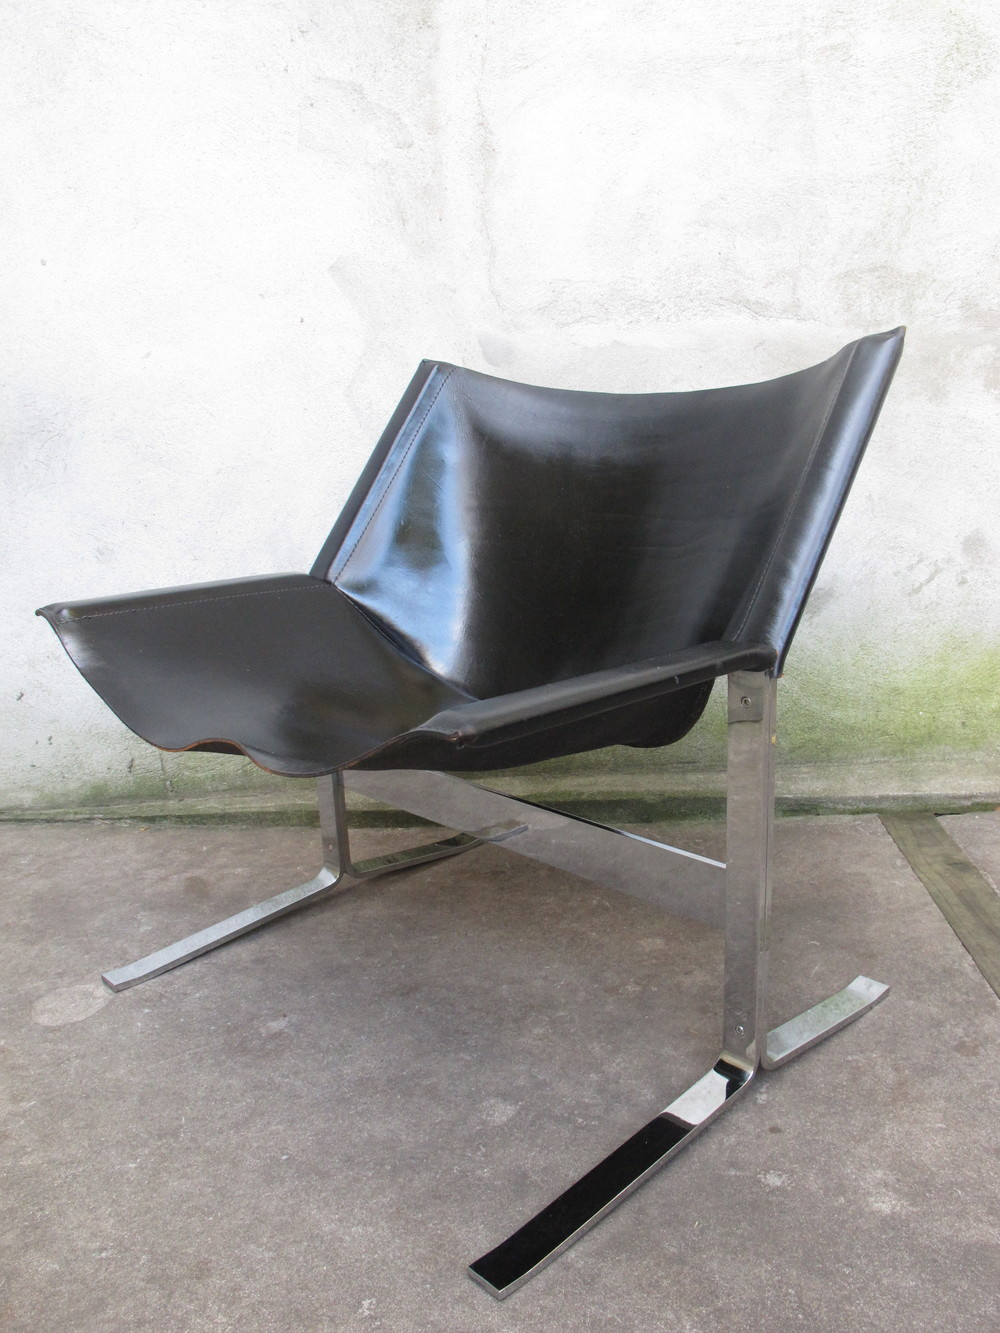 CLEMENT MEADMORE NO. 248 LEATHER SLING LOUNGE CHAIR